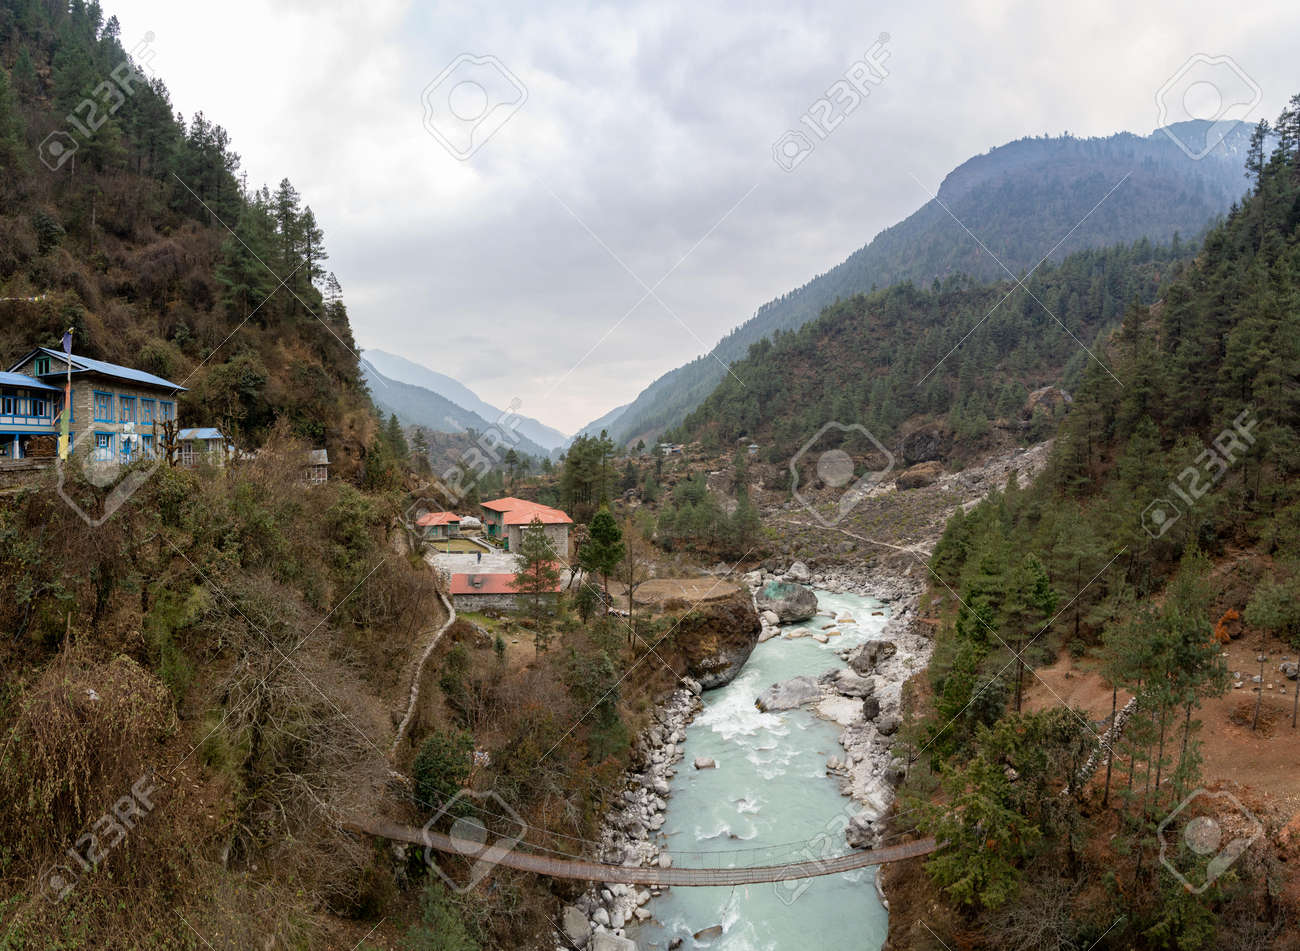 A small mountain town beside a river and swinging bridge in the mountains of Nepal. - 169836049